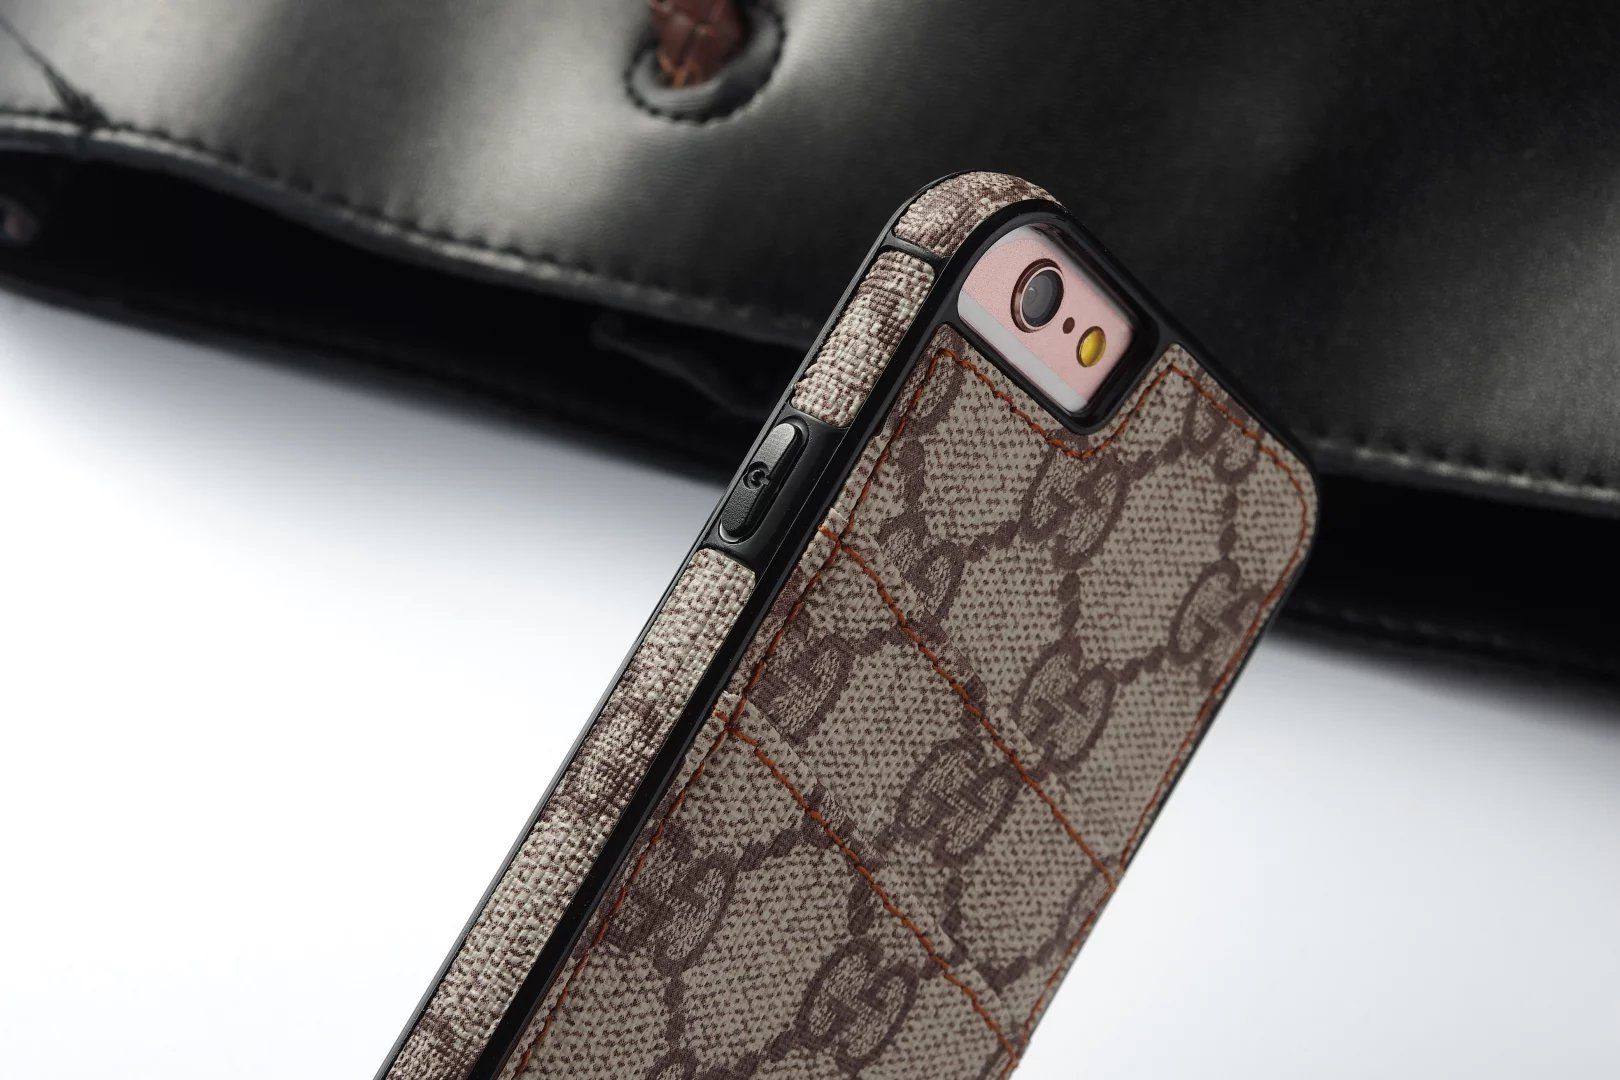 iphone case selbst gestalten günstig foto iphone hülle Louis Vuitton iphone7 Plus hülle virenschutz iphone 7 Plus iphone 7 Plus hülle mit eigenem foto iphone 7 Plus a7 arbon eigene hülle gestalten iphone 7 Plushülle iphone 7 Plus hülle muster